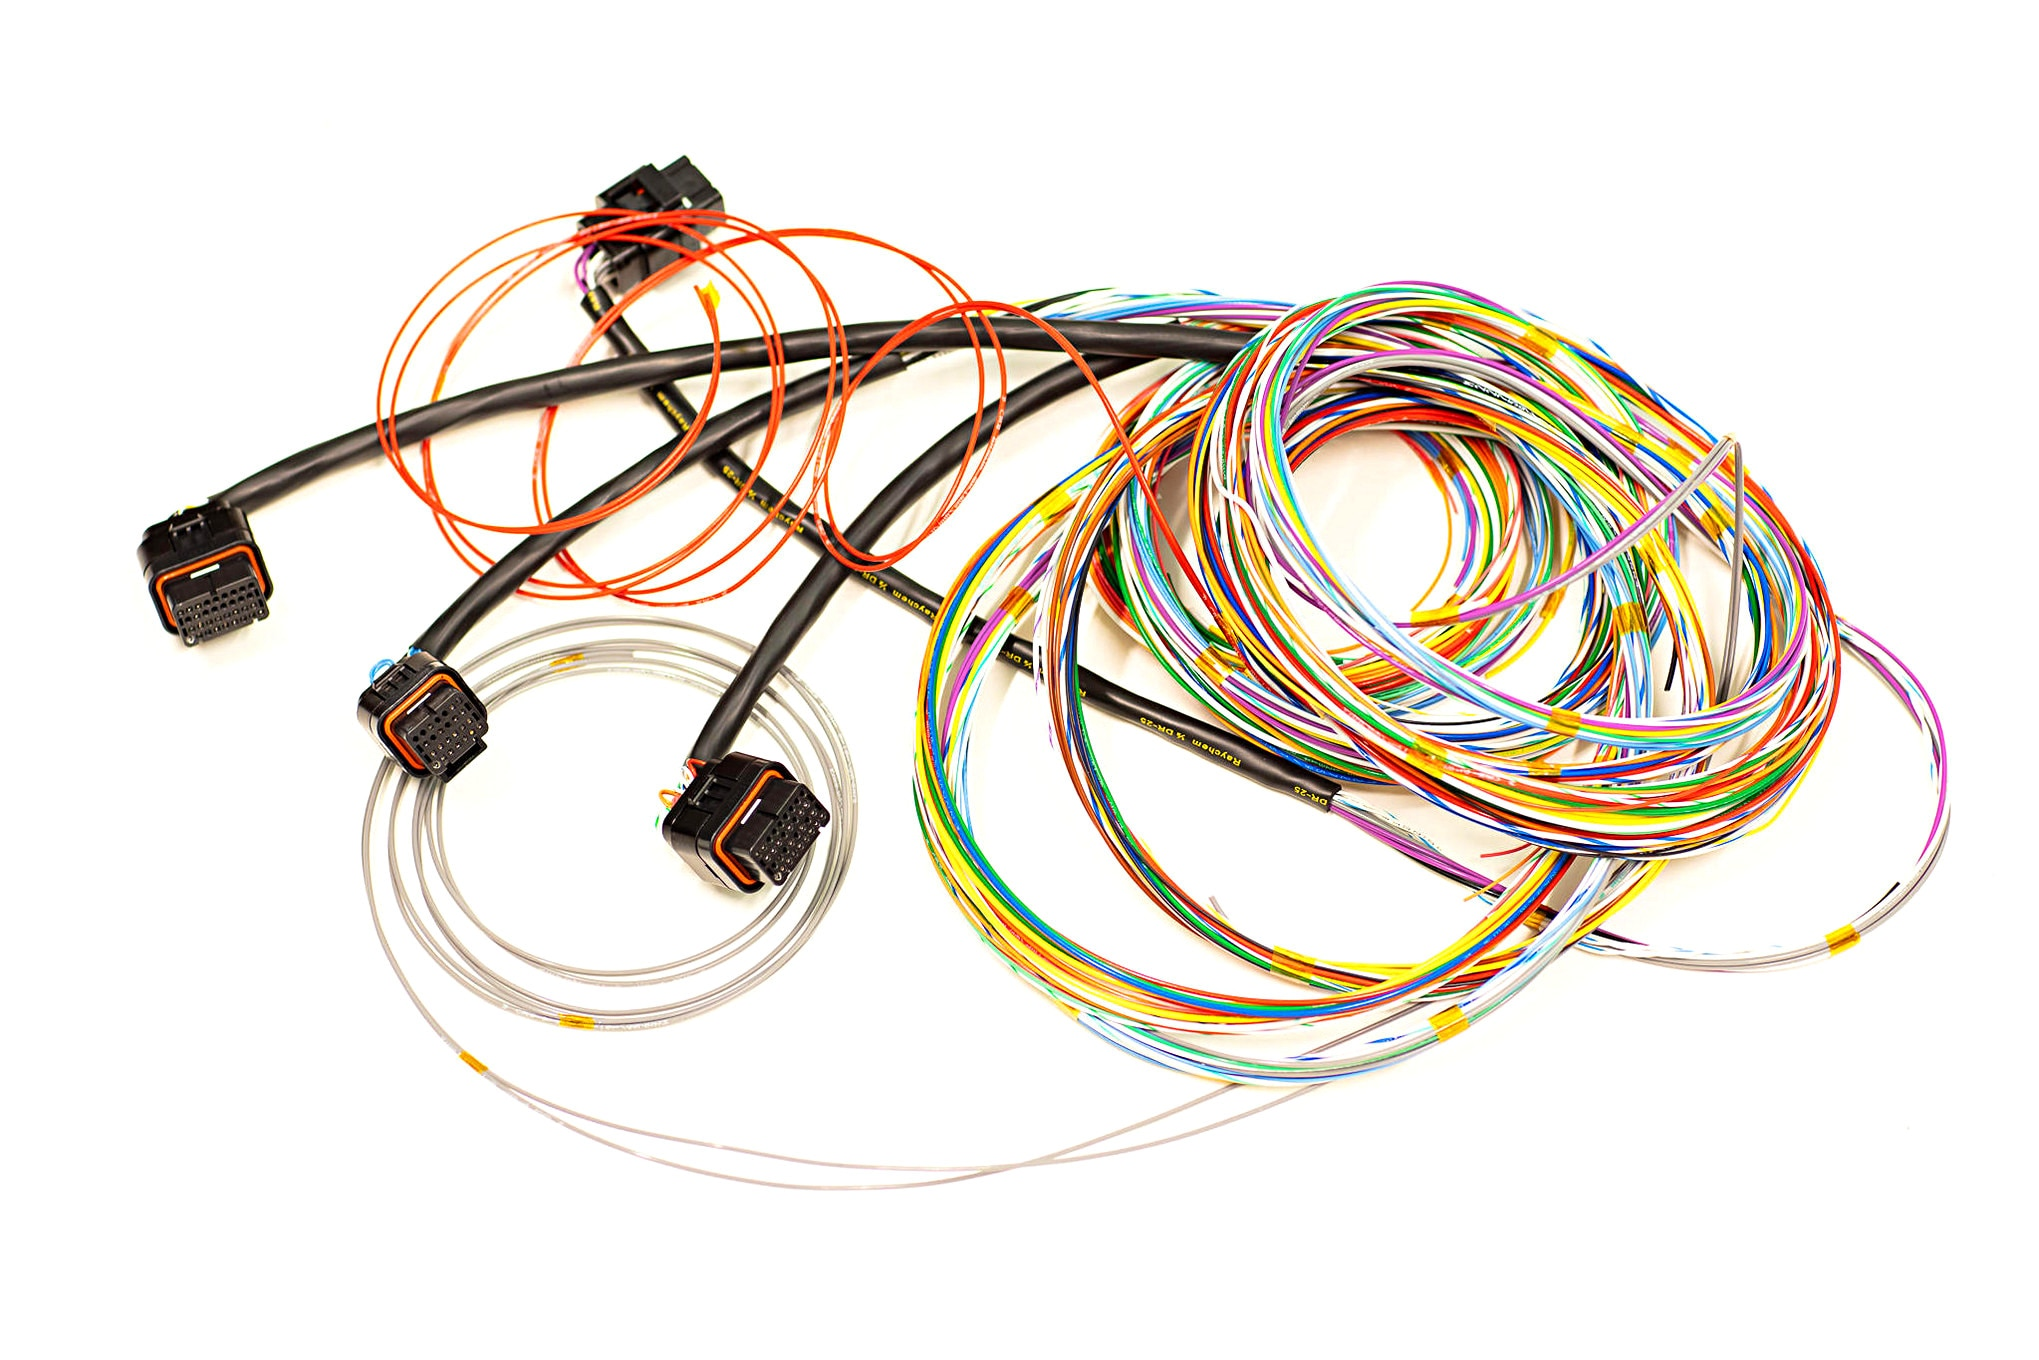 aero wiring harness wiring diagram sortautomotive mil spec wiring can improve your cars electrical system aero [ 2039 x 1360 Pixel ]